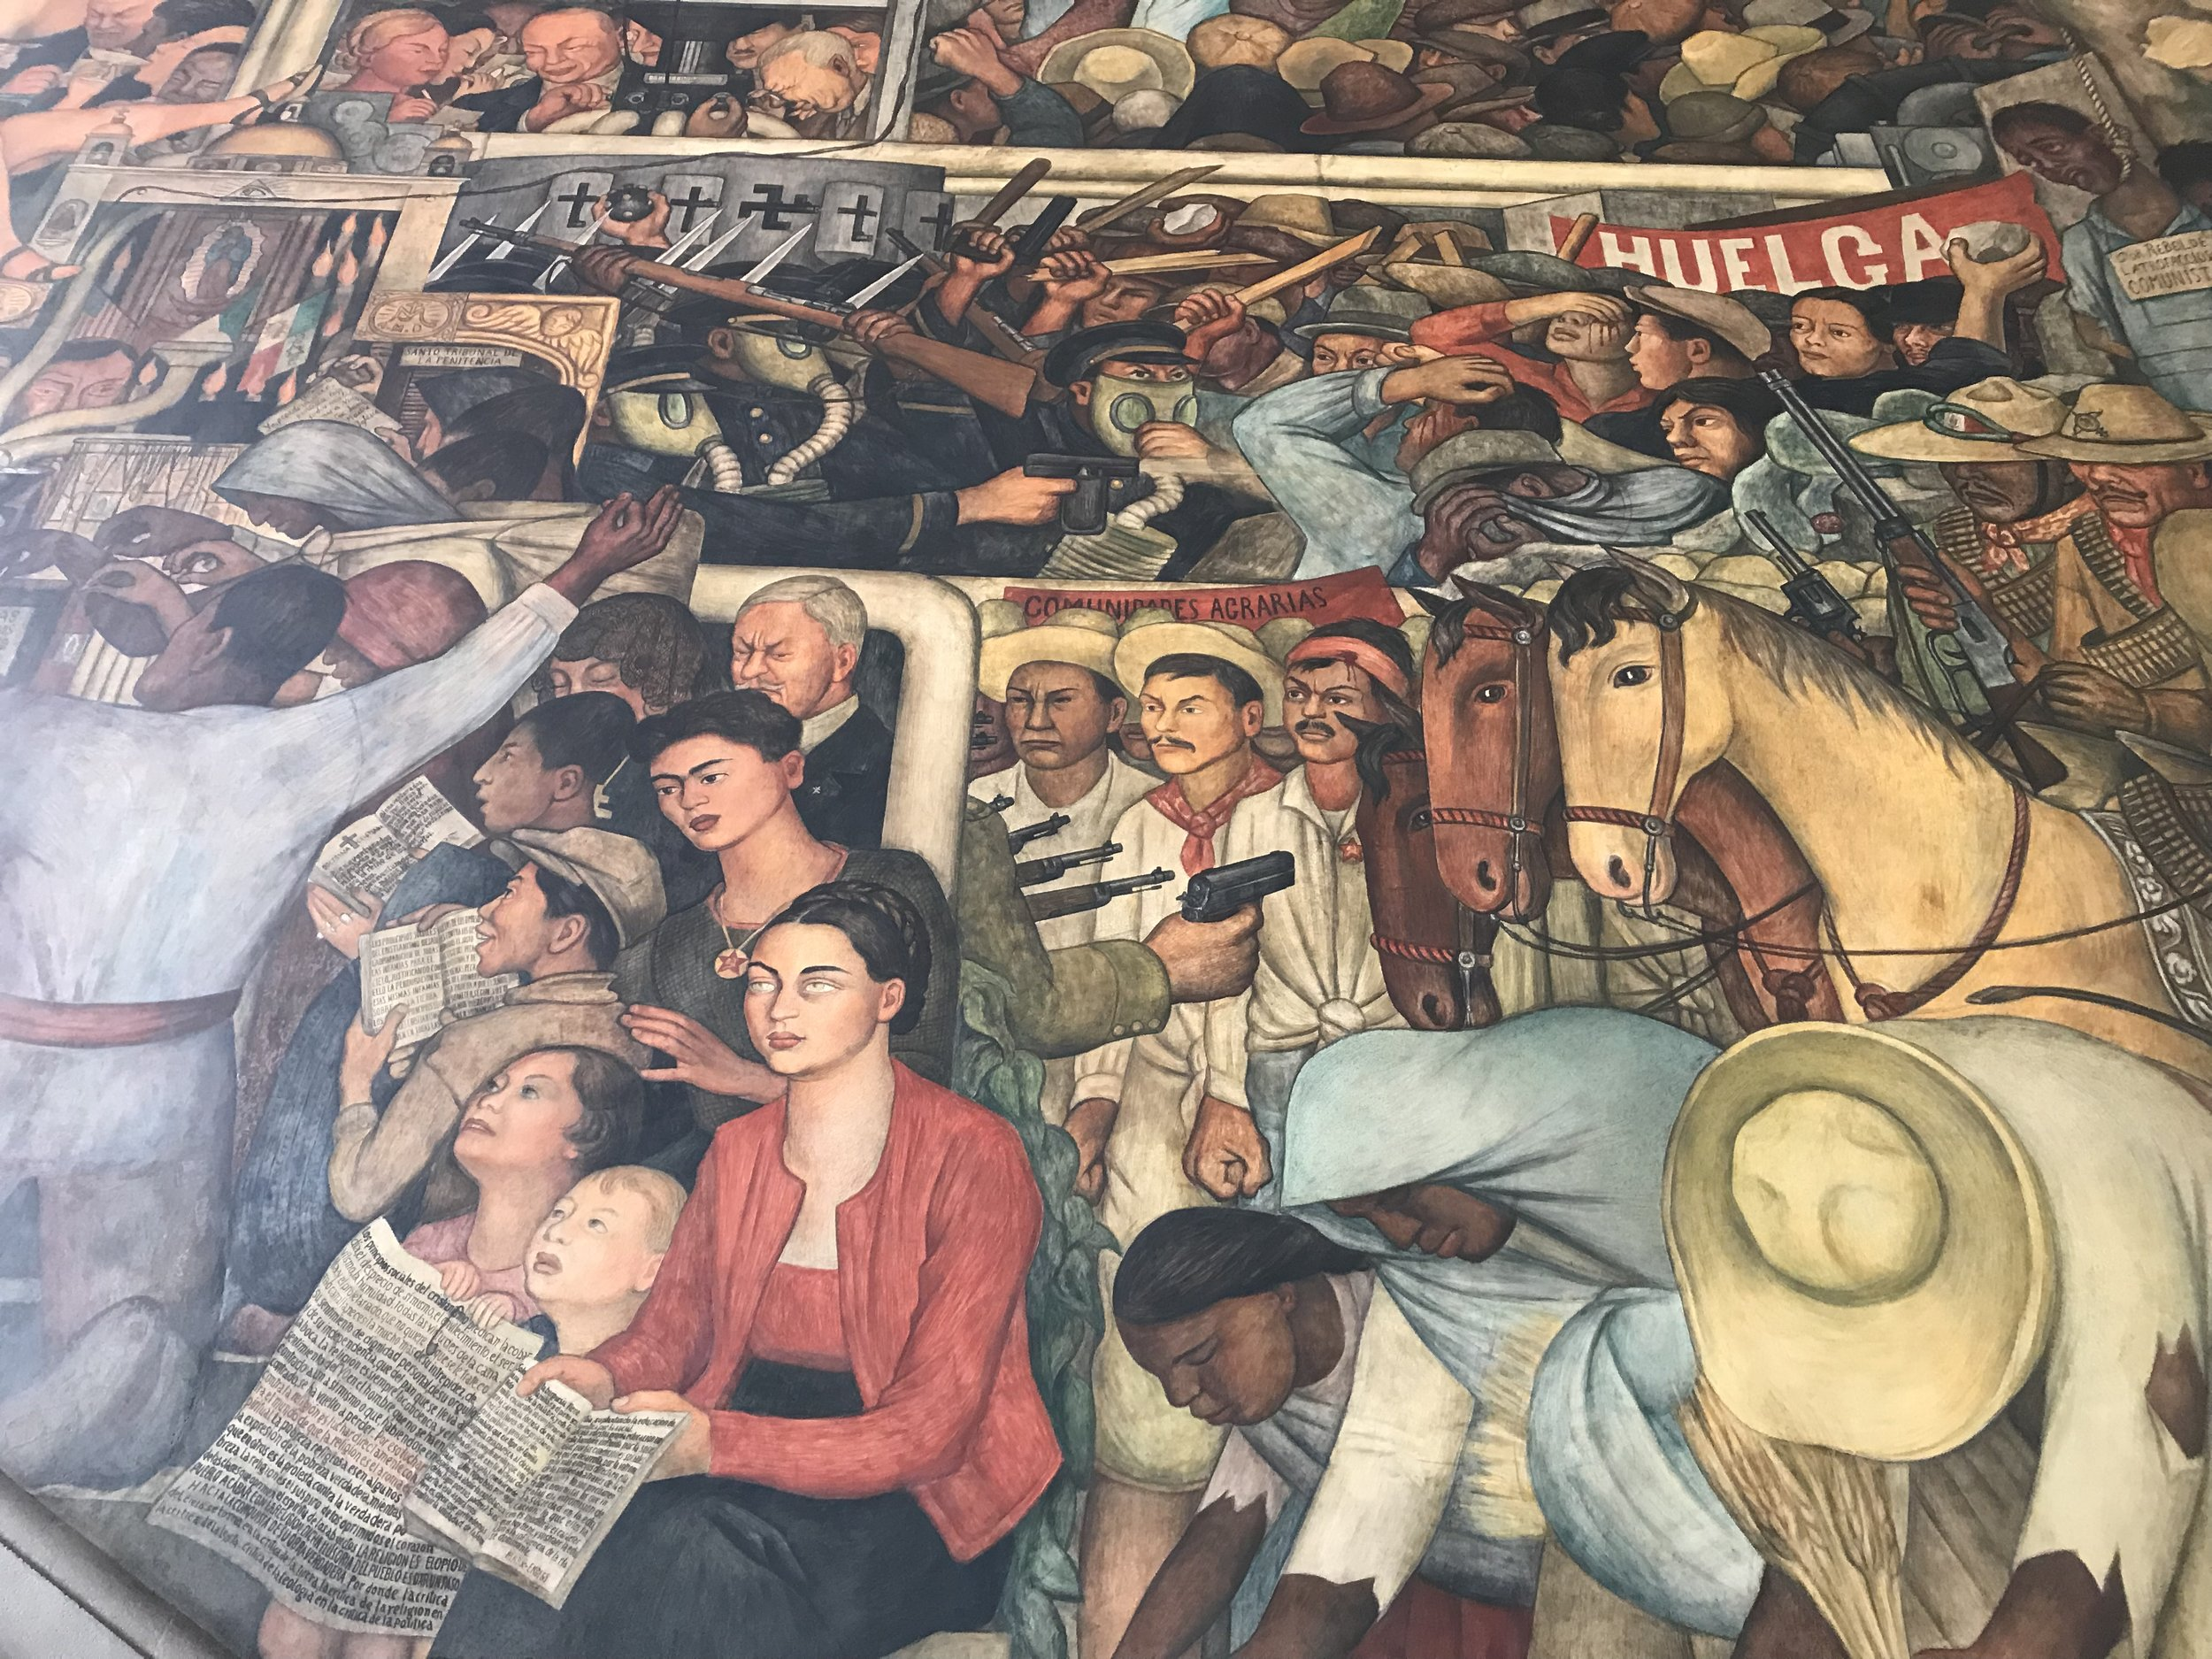 One of Diego Rivera's murals in the National Palace depicting Frida